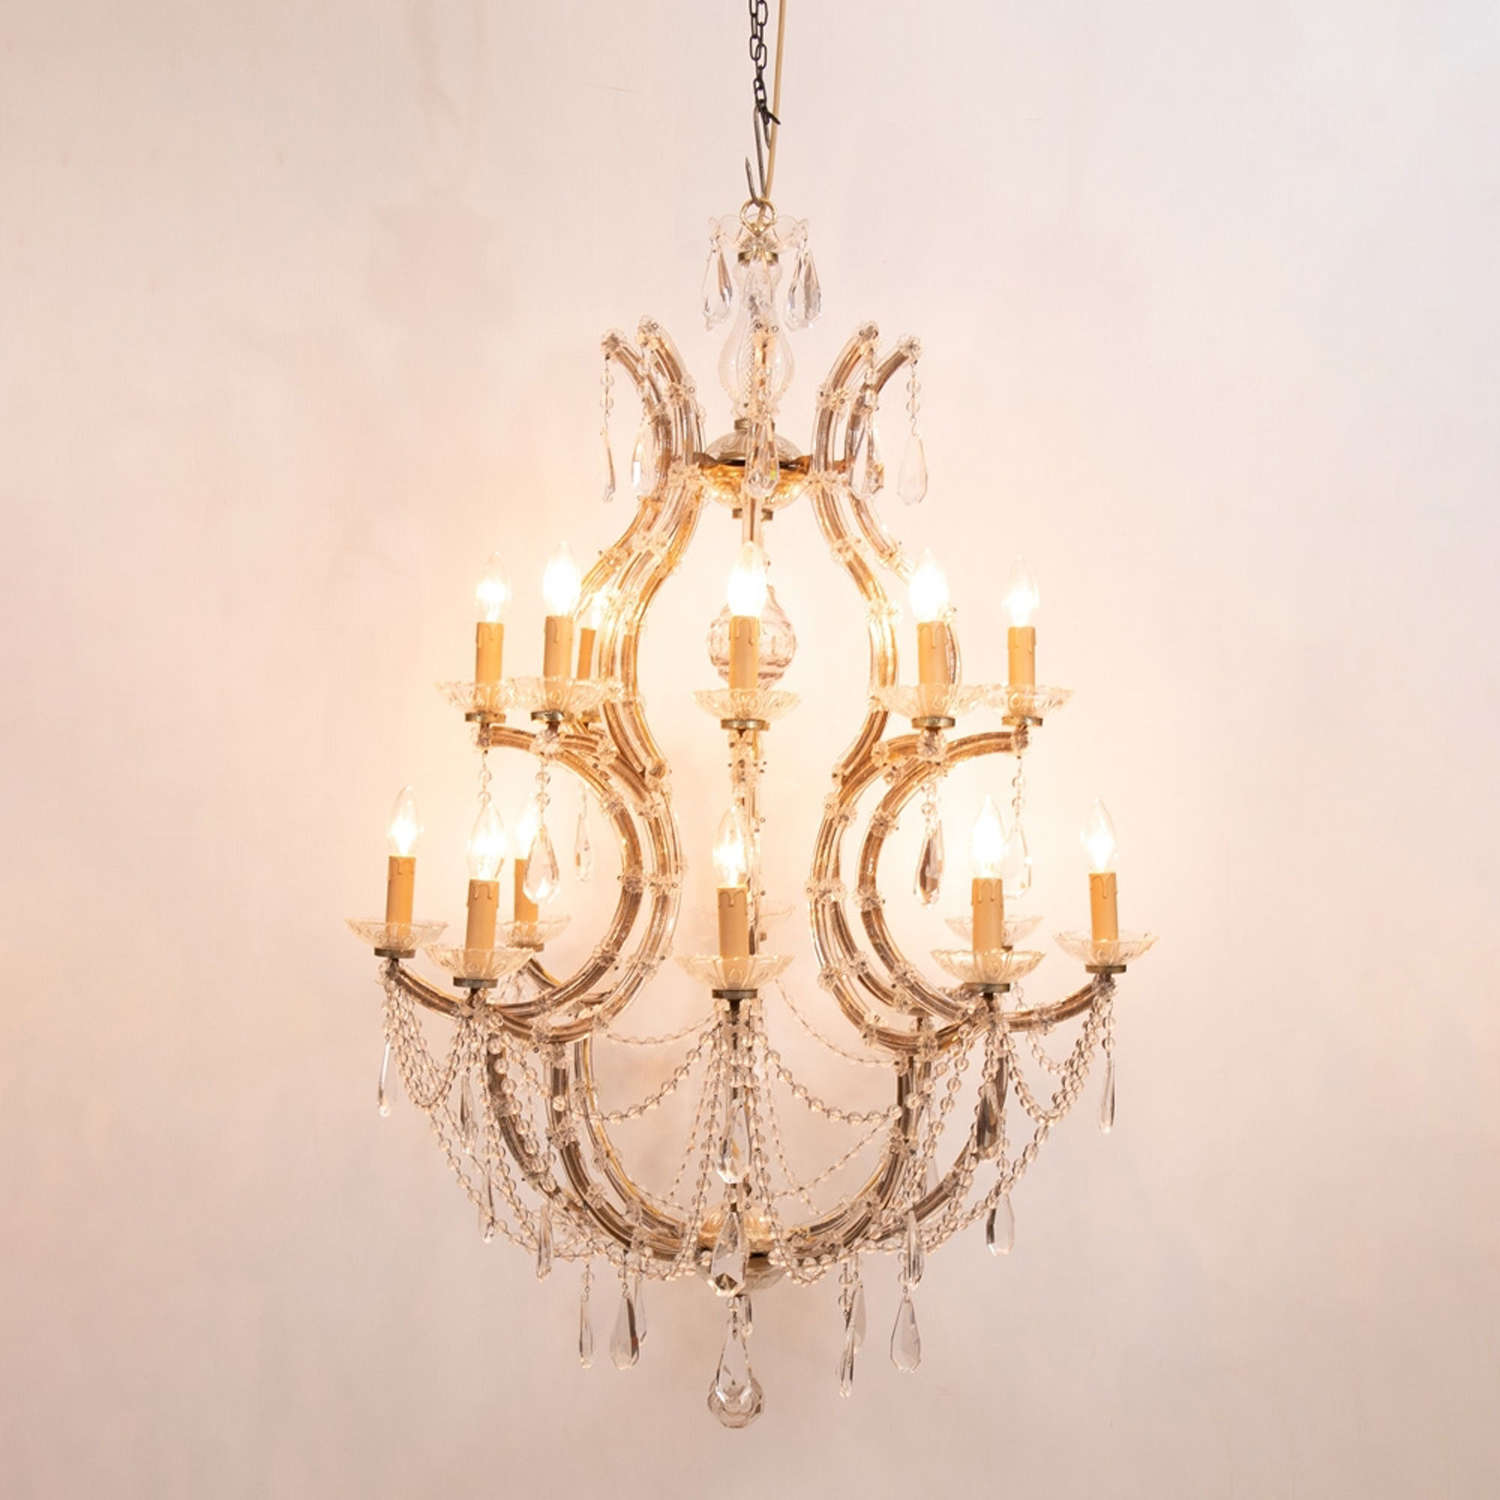 Vintage French Maria Theresa Birdcage Chandelier c.1940